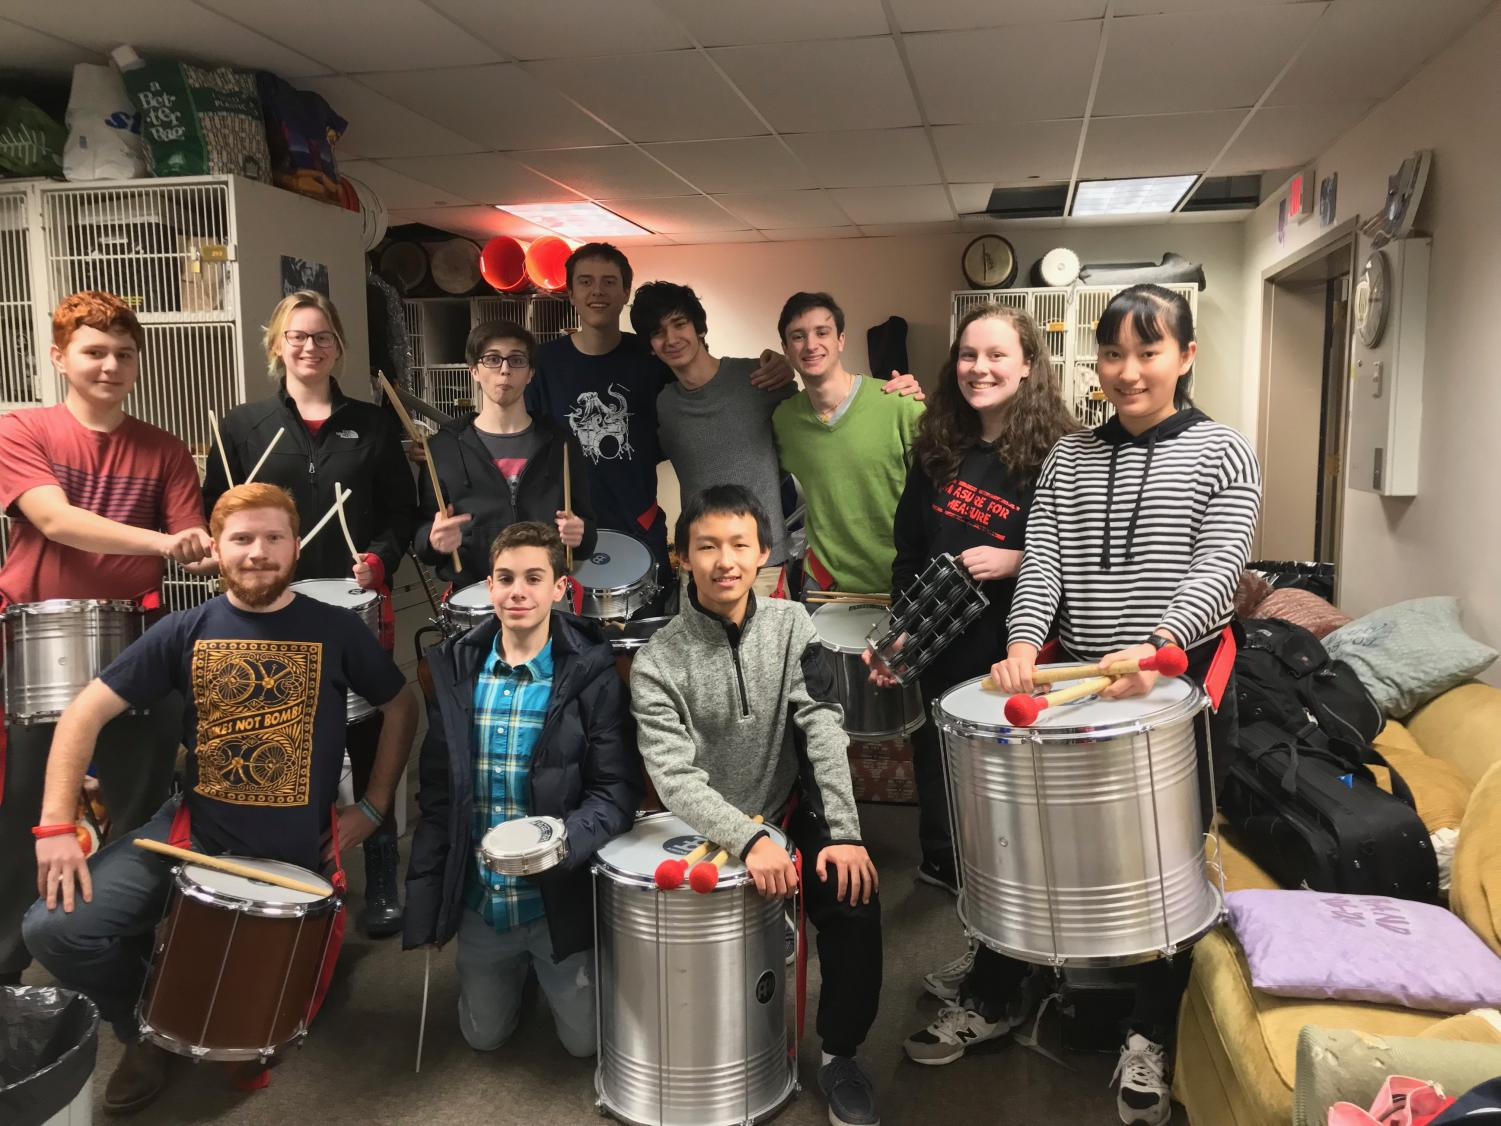 Members of the Samba Drumming club are well-known for their school performances. Club members say that the music brings them closer together.